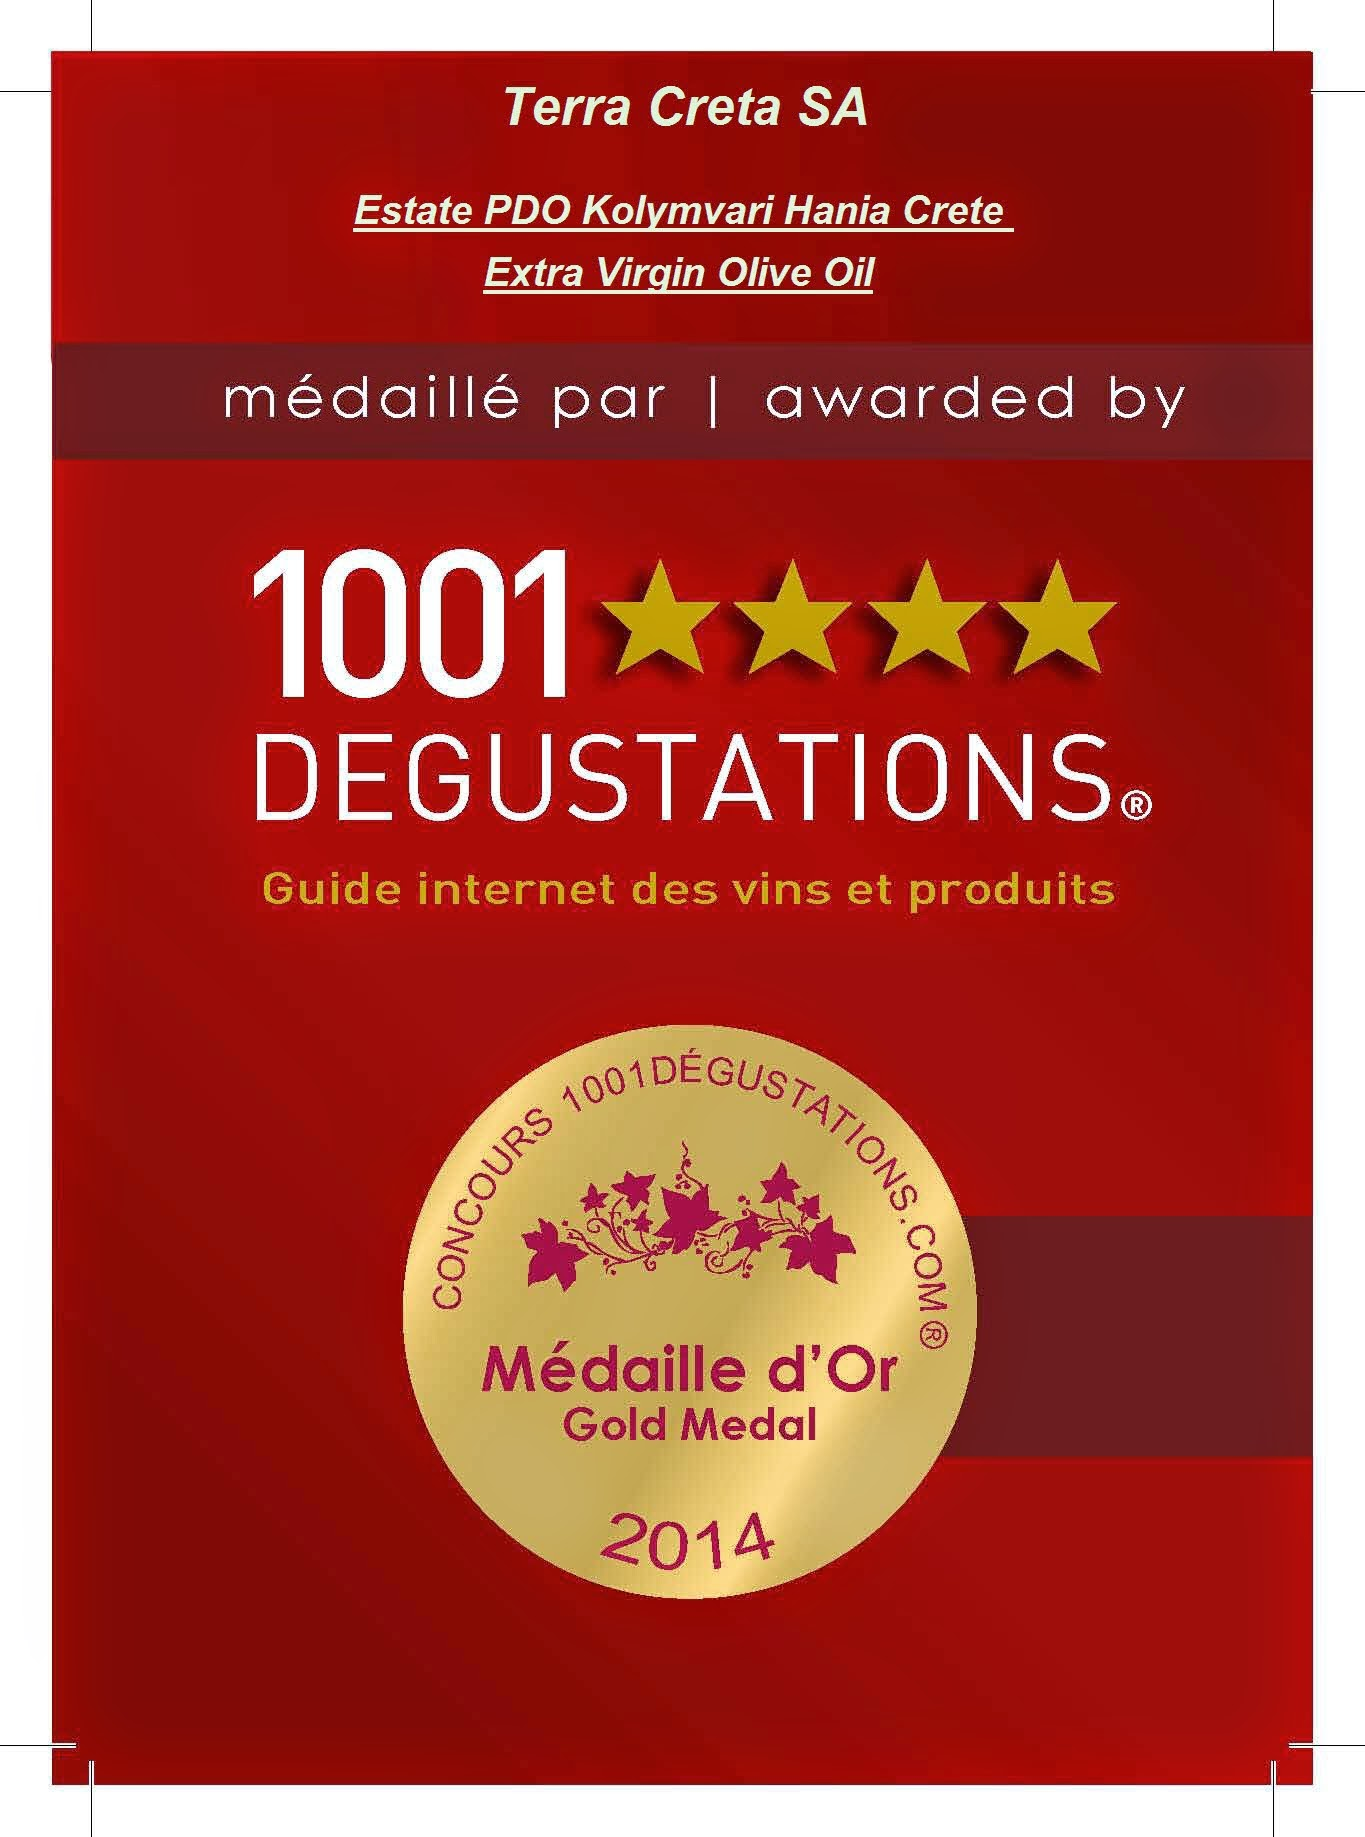 1001 DEGUSTATIONS.COM